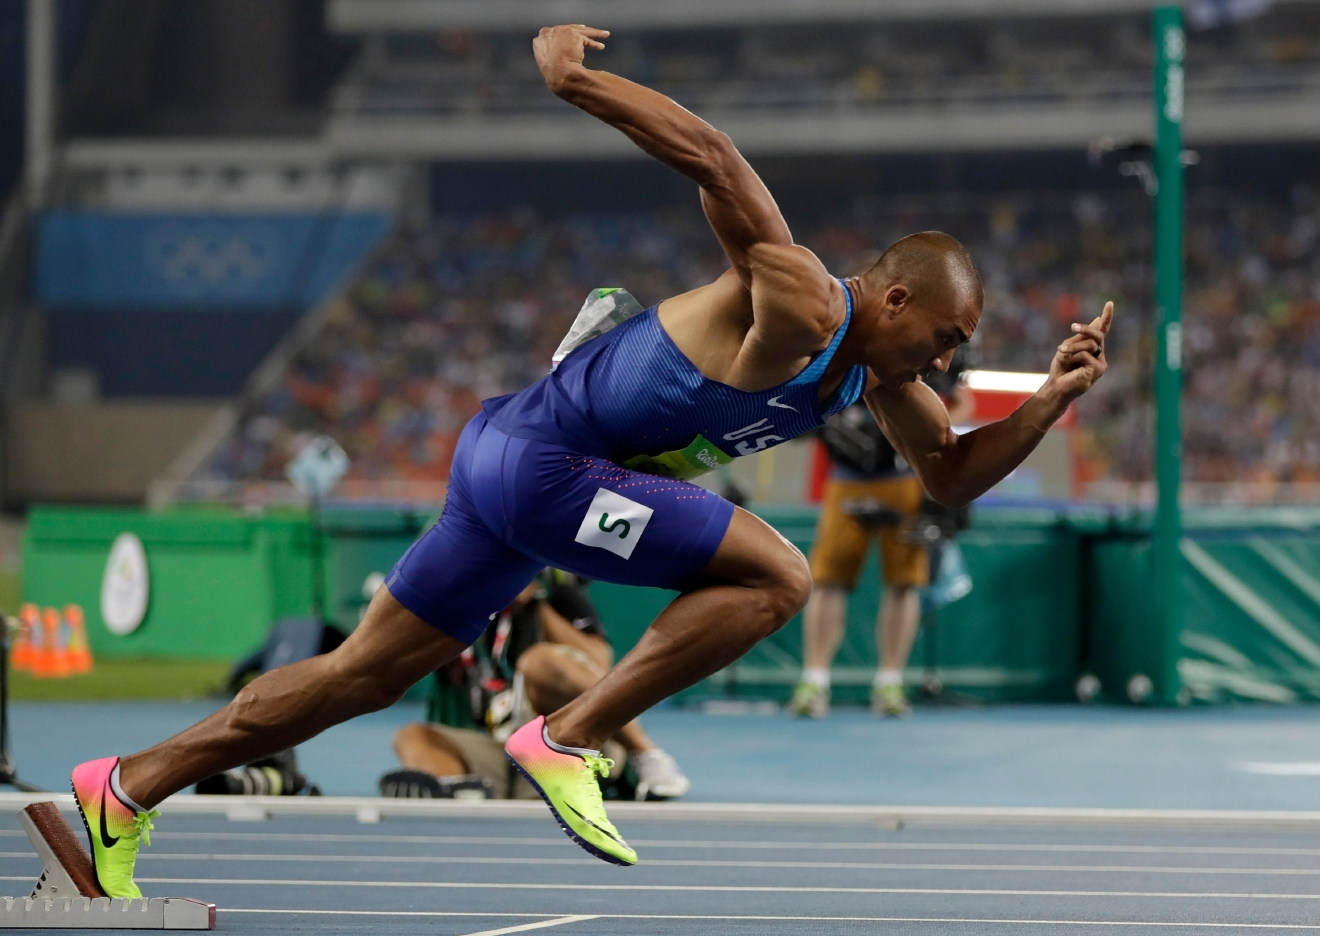 United States' Ashton Eaton competes in the men's decathlon 400-meter heat during the athletics competitions of the 2016 Summer Olympics at the Olympic stadium in Rio de Janeiro, Brazil, Wednesday, Aug. 17, 2016. (AP Photo/David J. Phillip)